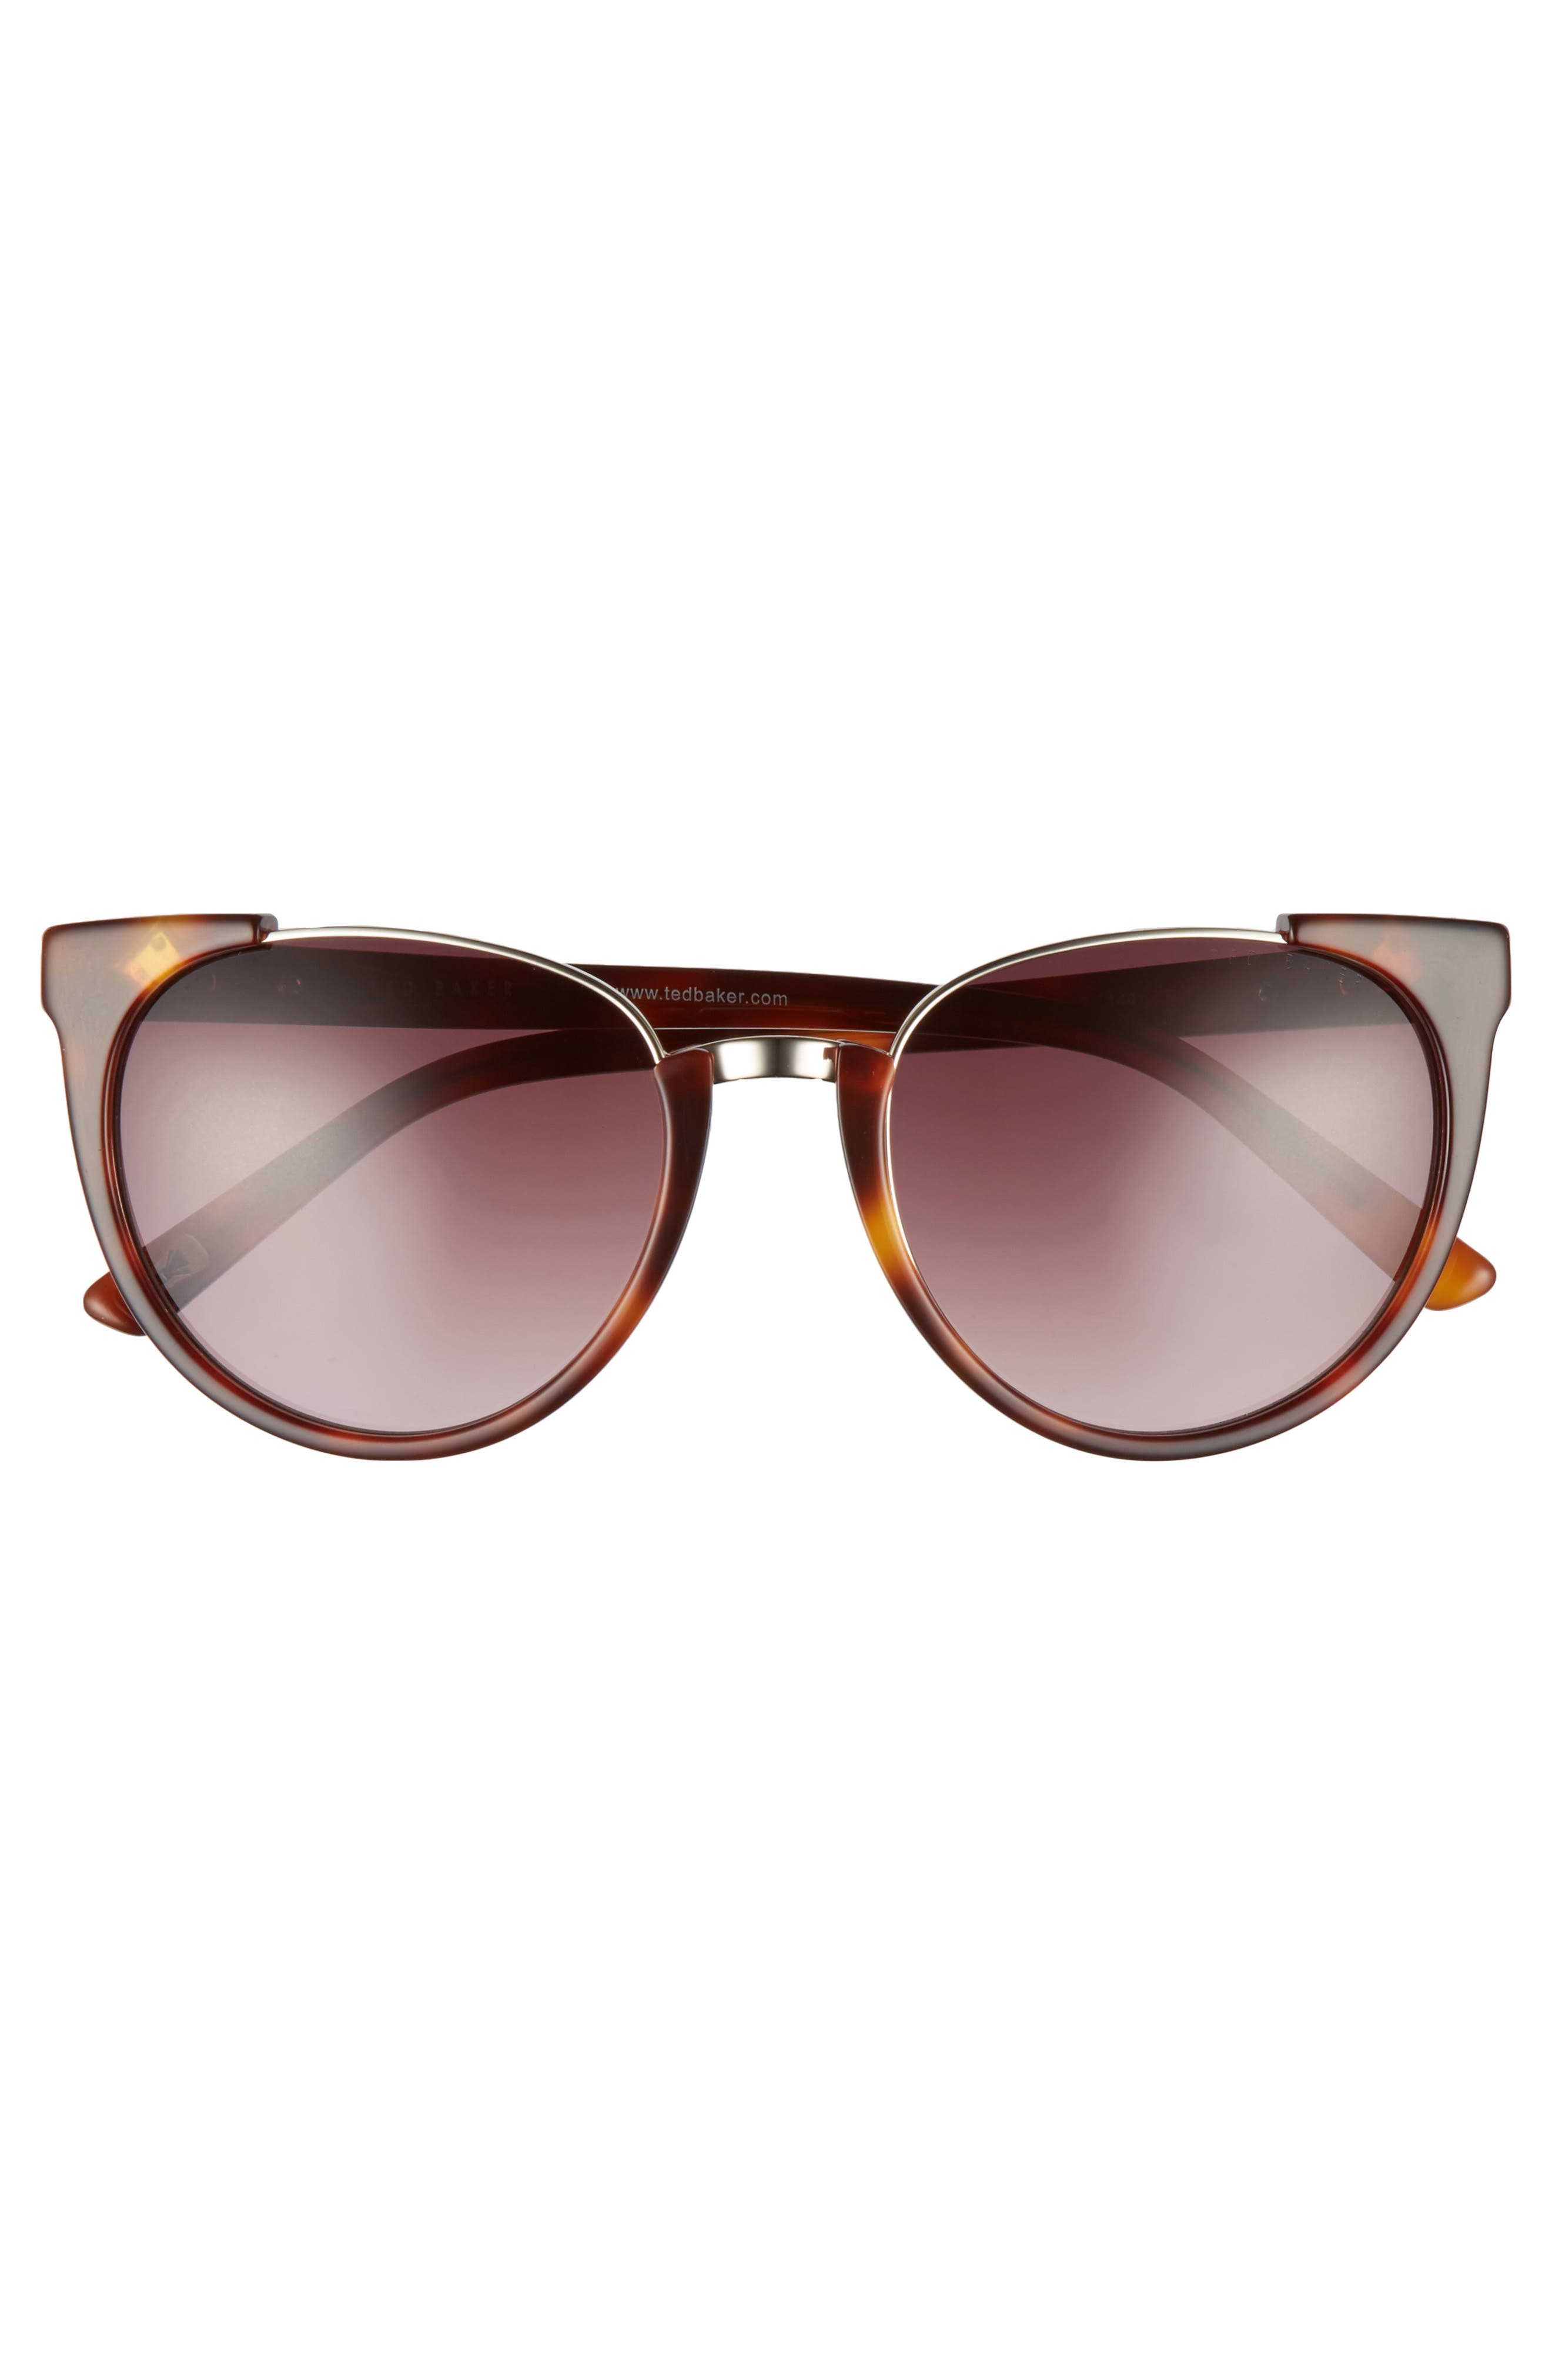 53mm Modified Oval Sunglasses,                             Alternate thumbnail 3, color,                             200